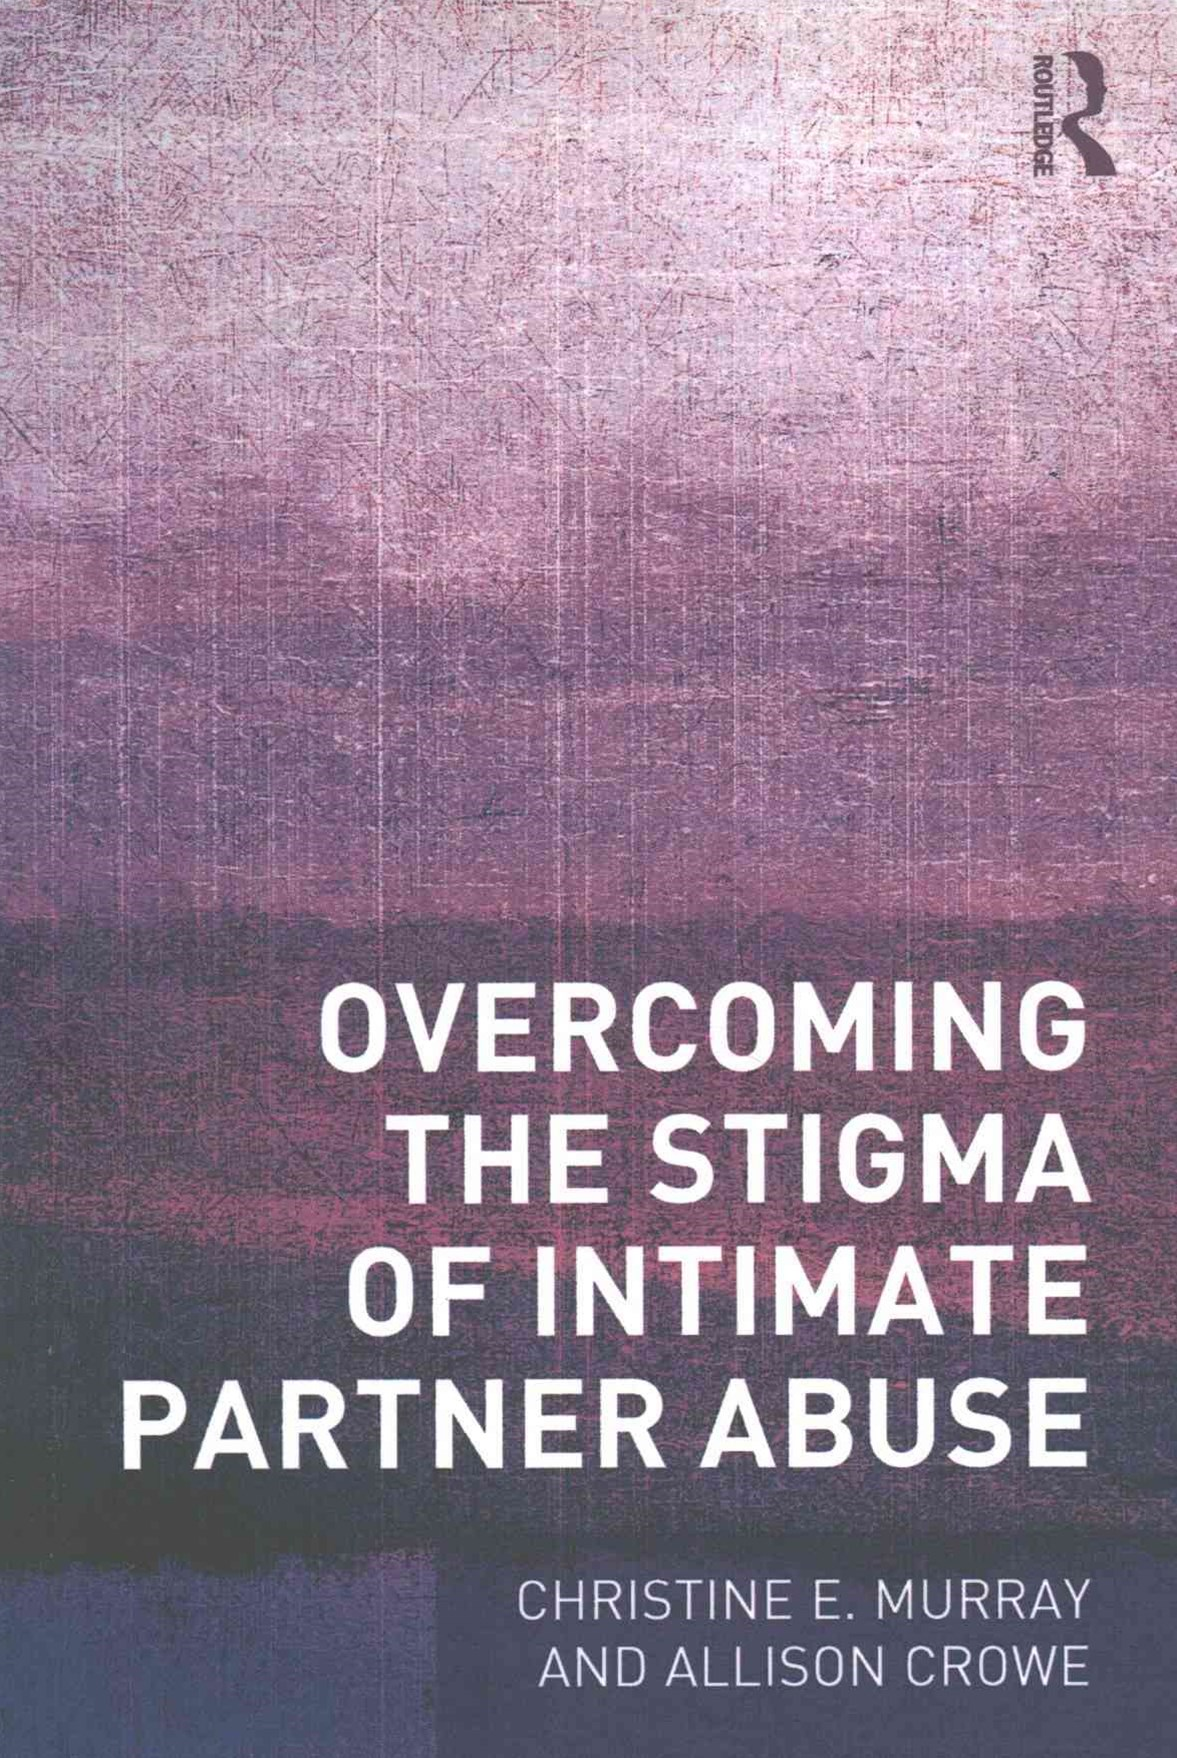 Overcoming the Stigma of Intimate Partner Abuse